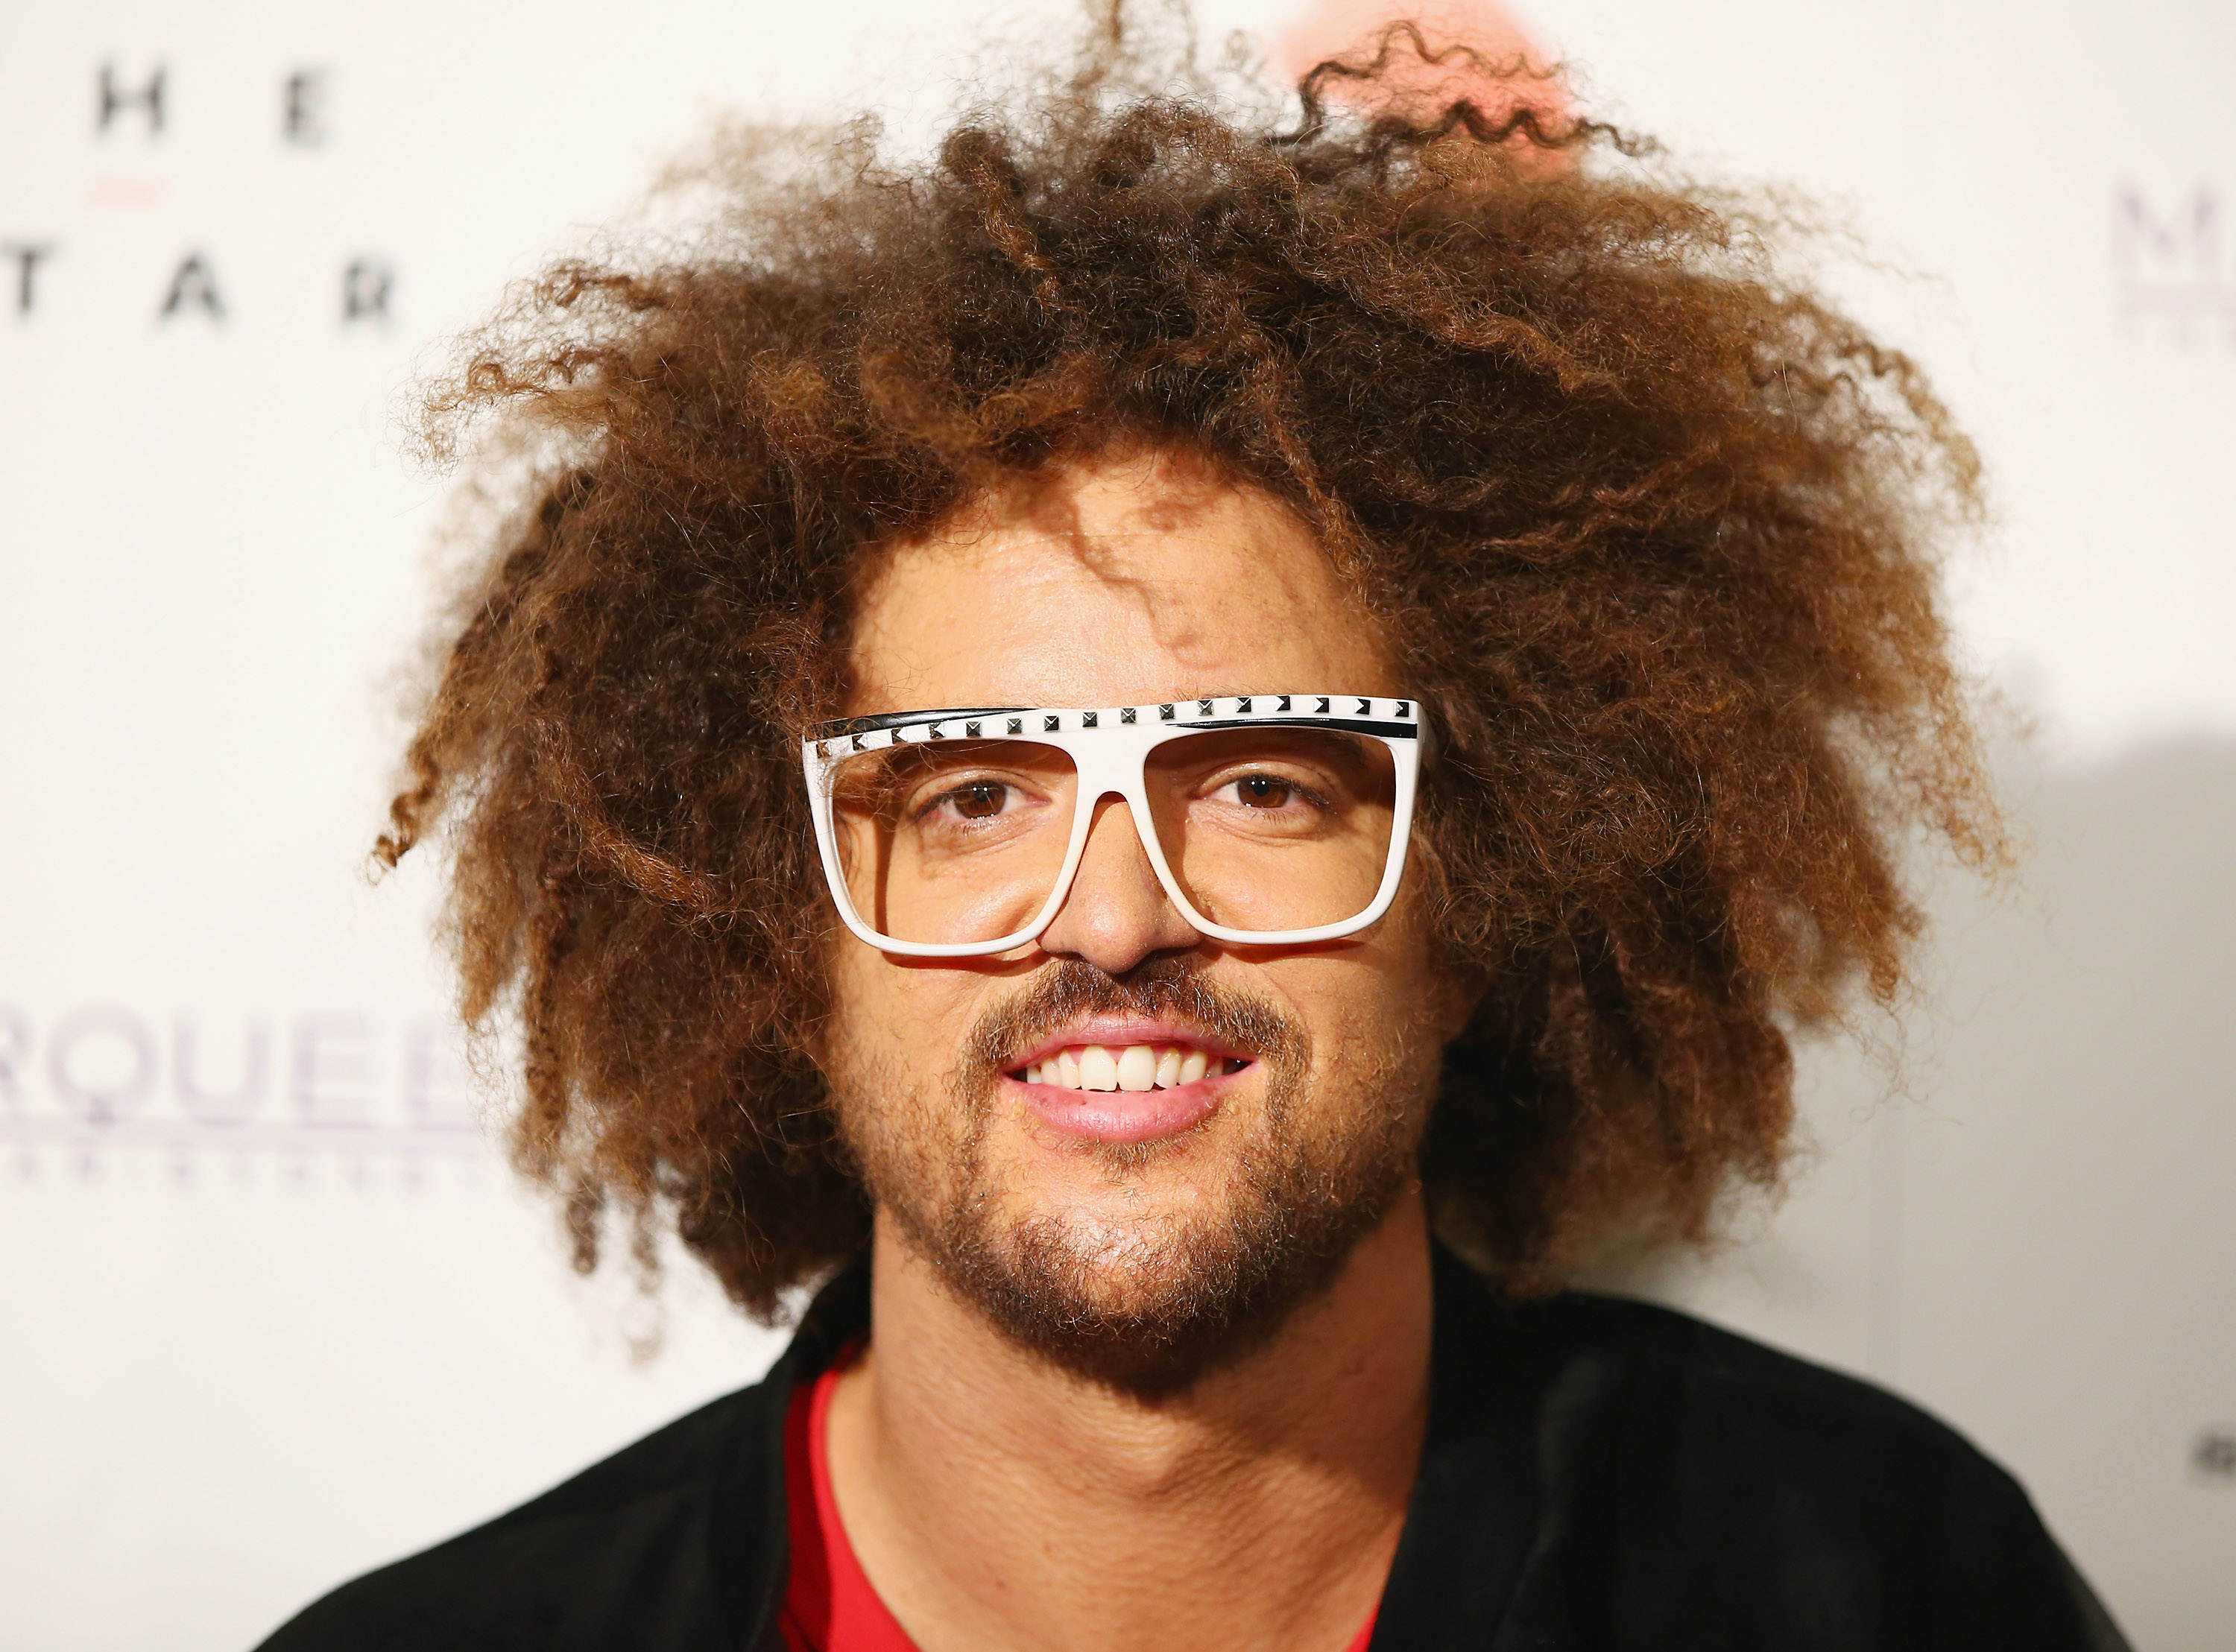 Redfoo poses at Marquee Nightclub on Aug. 12, 2014 in Sydney.